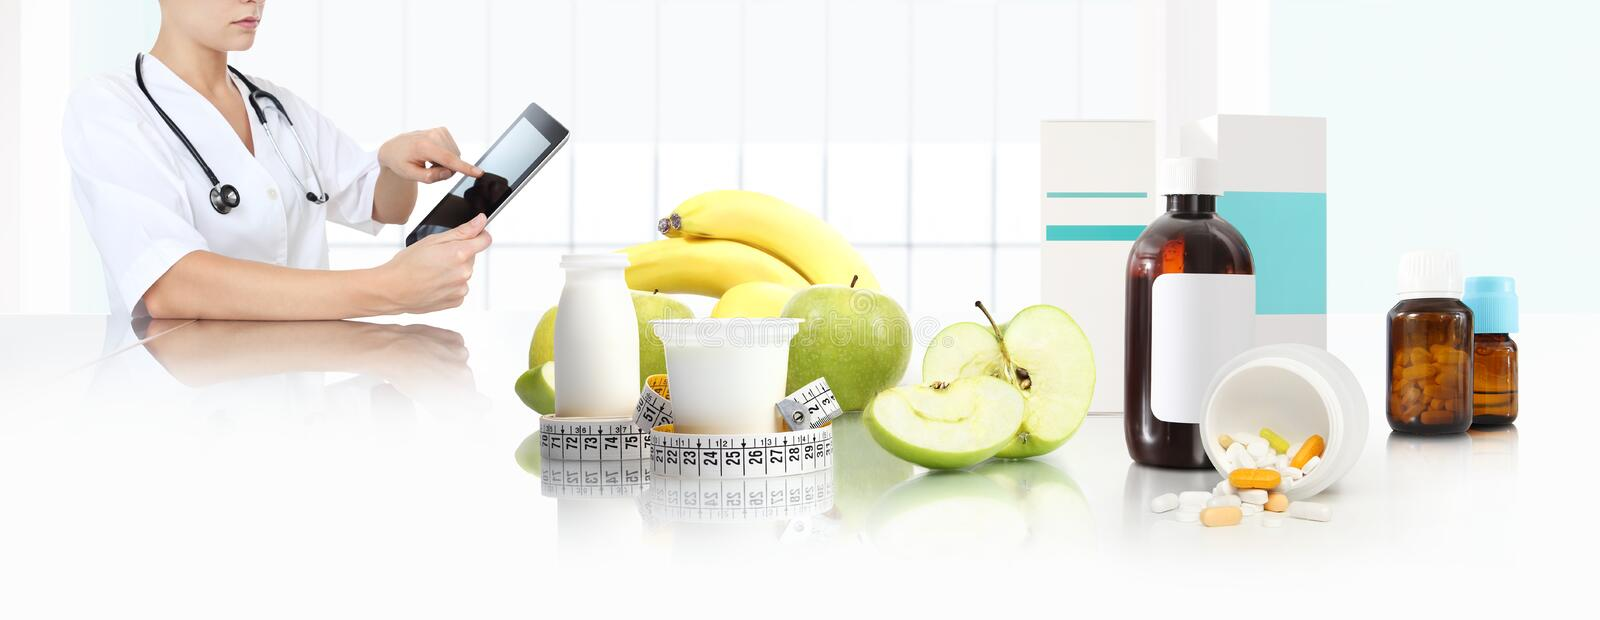 Dietitian nutritionist doctor prescribes prescription by consulting the digital tablet at the desk office with fruits and yogurt royalty free stock images